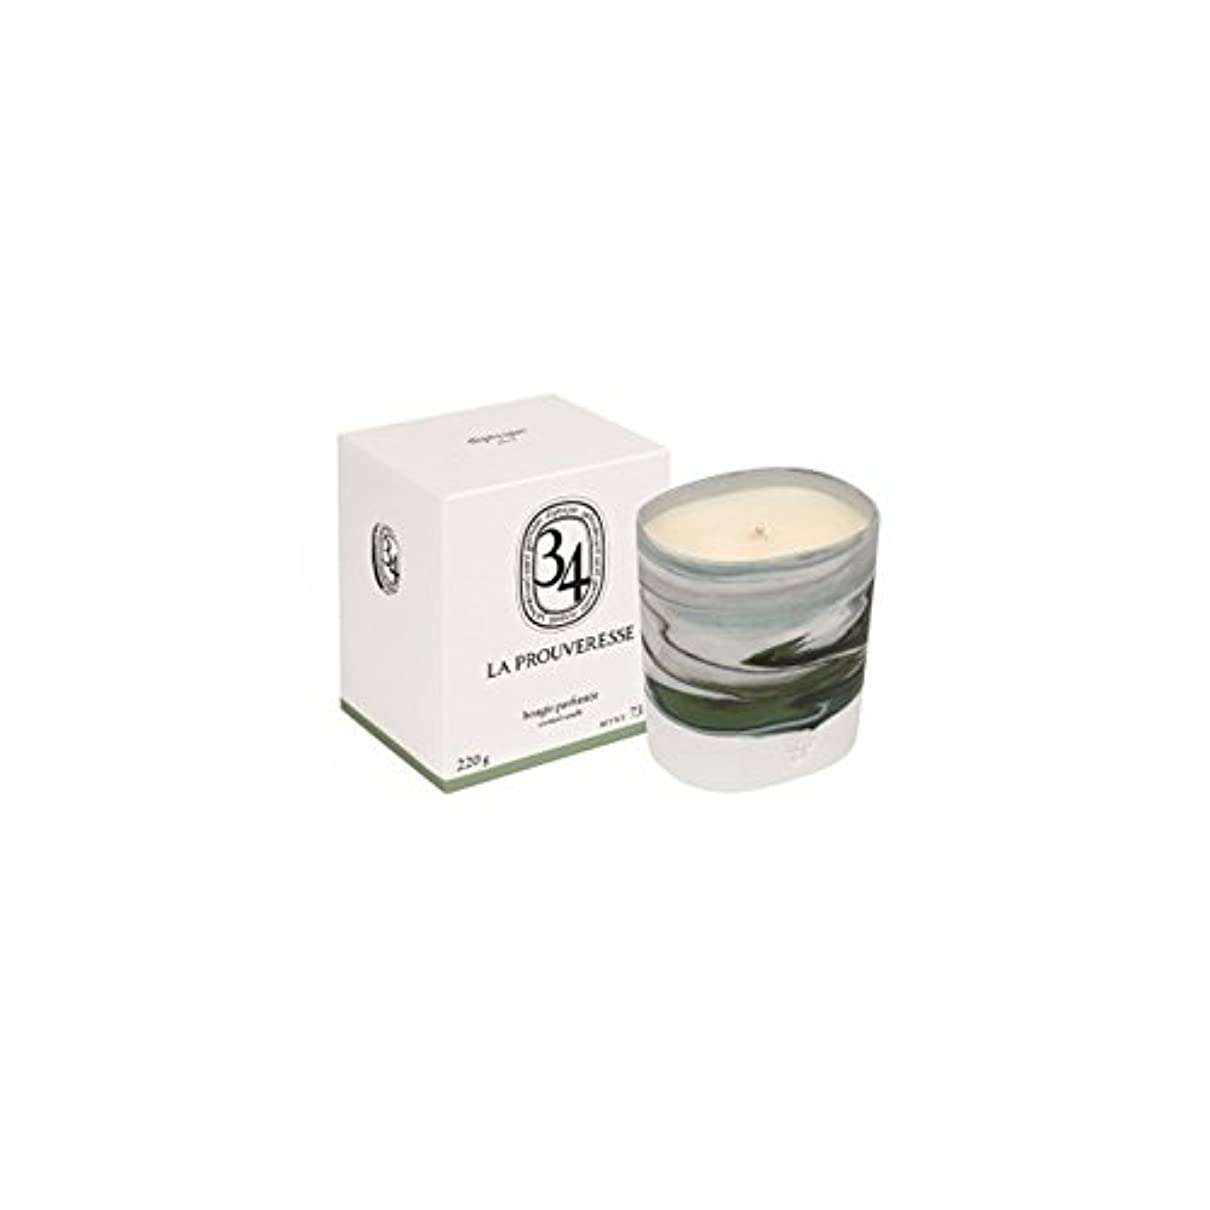 採用不倫文Diptyque Collection 34 La Prouveresse Scented Candle 220g (Pack of 2) - ラProuveresse Diptyqueコレクション34香りのキャンドル220...